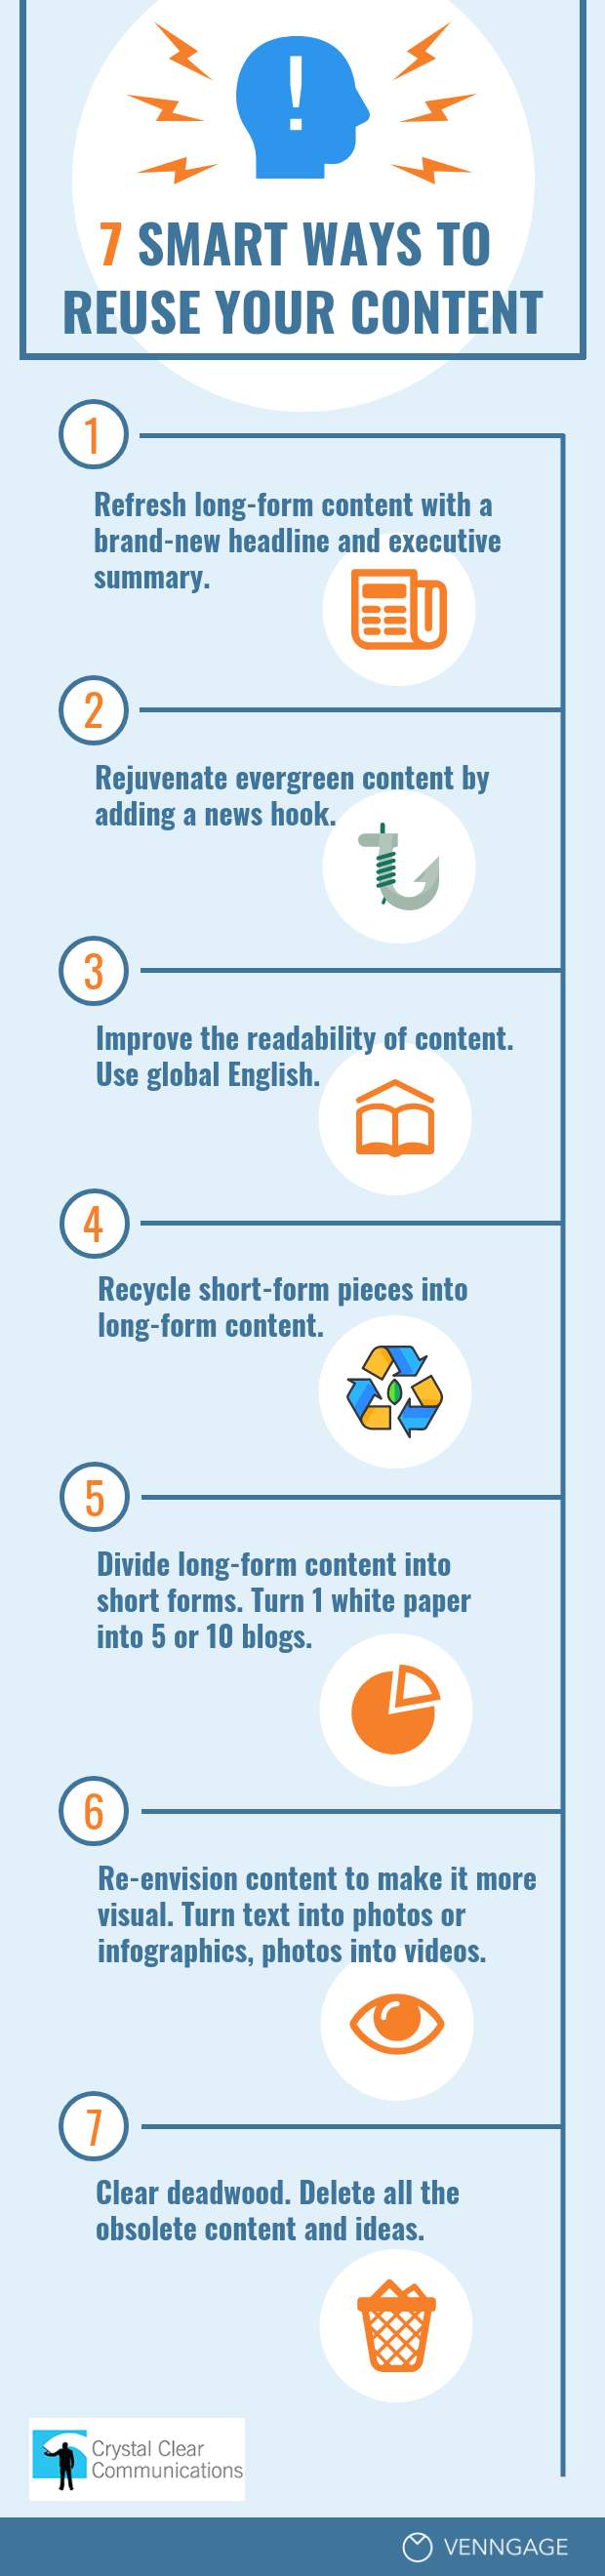 infographic: 7 smart ways to reuse content